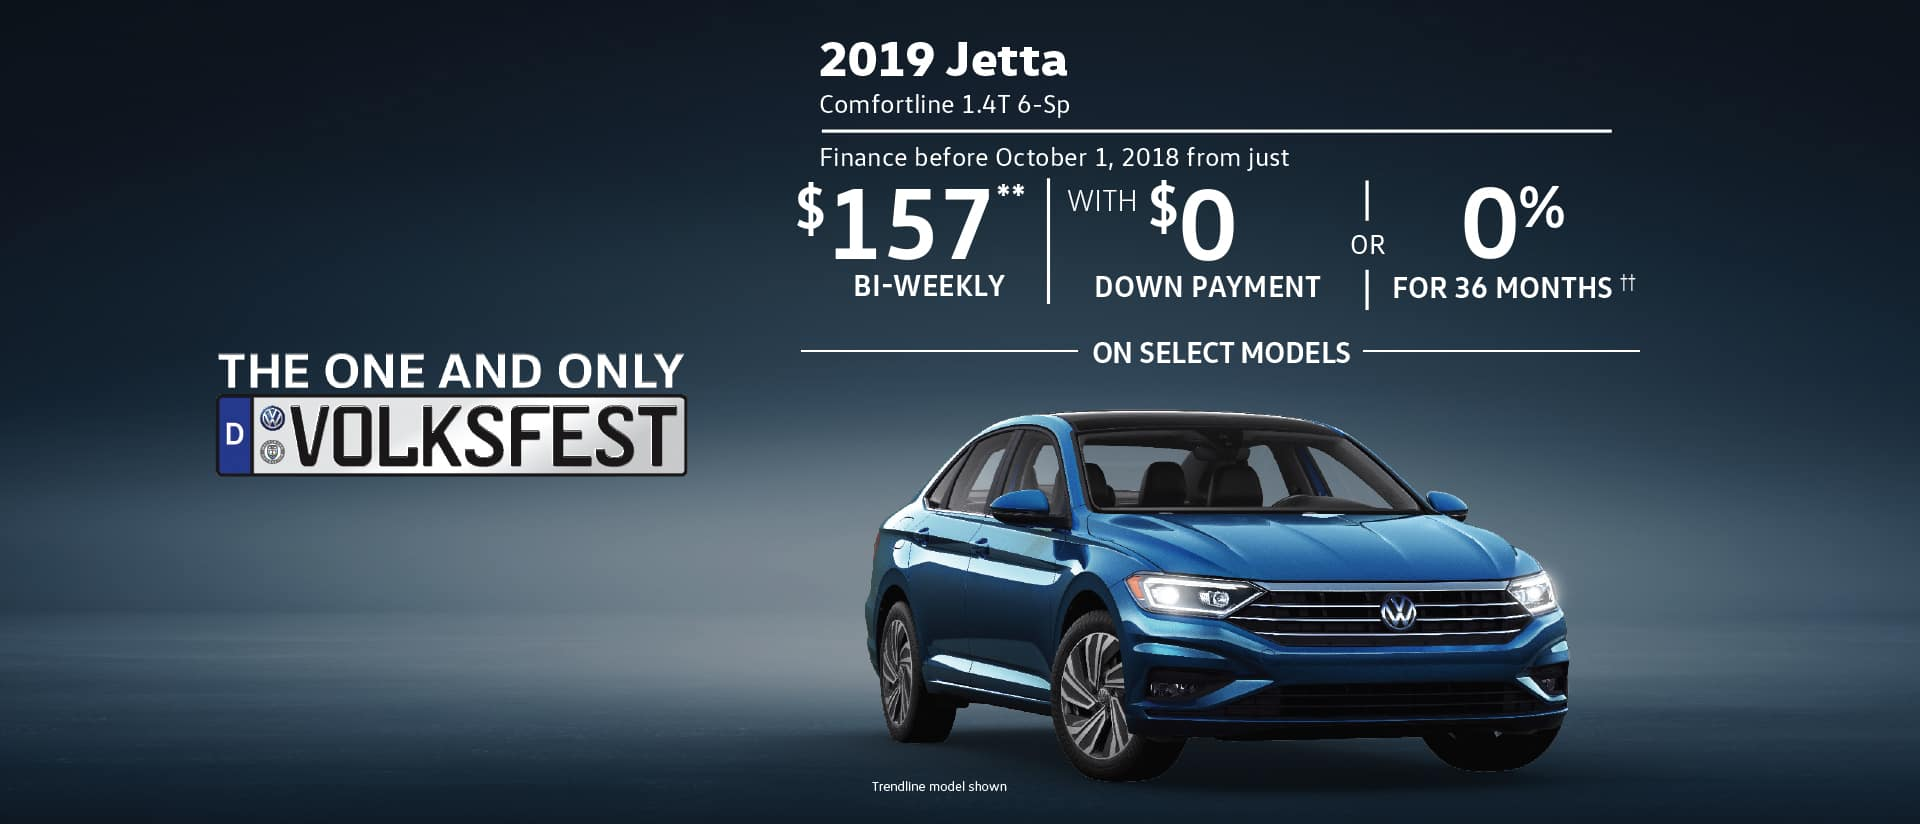 Volksfest - Clearance Event - Jetta special offer